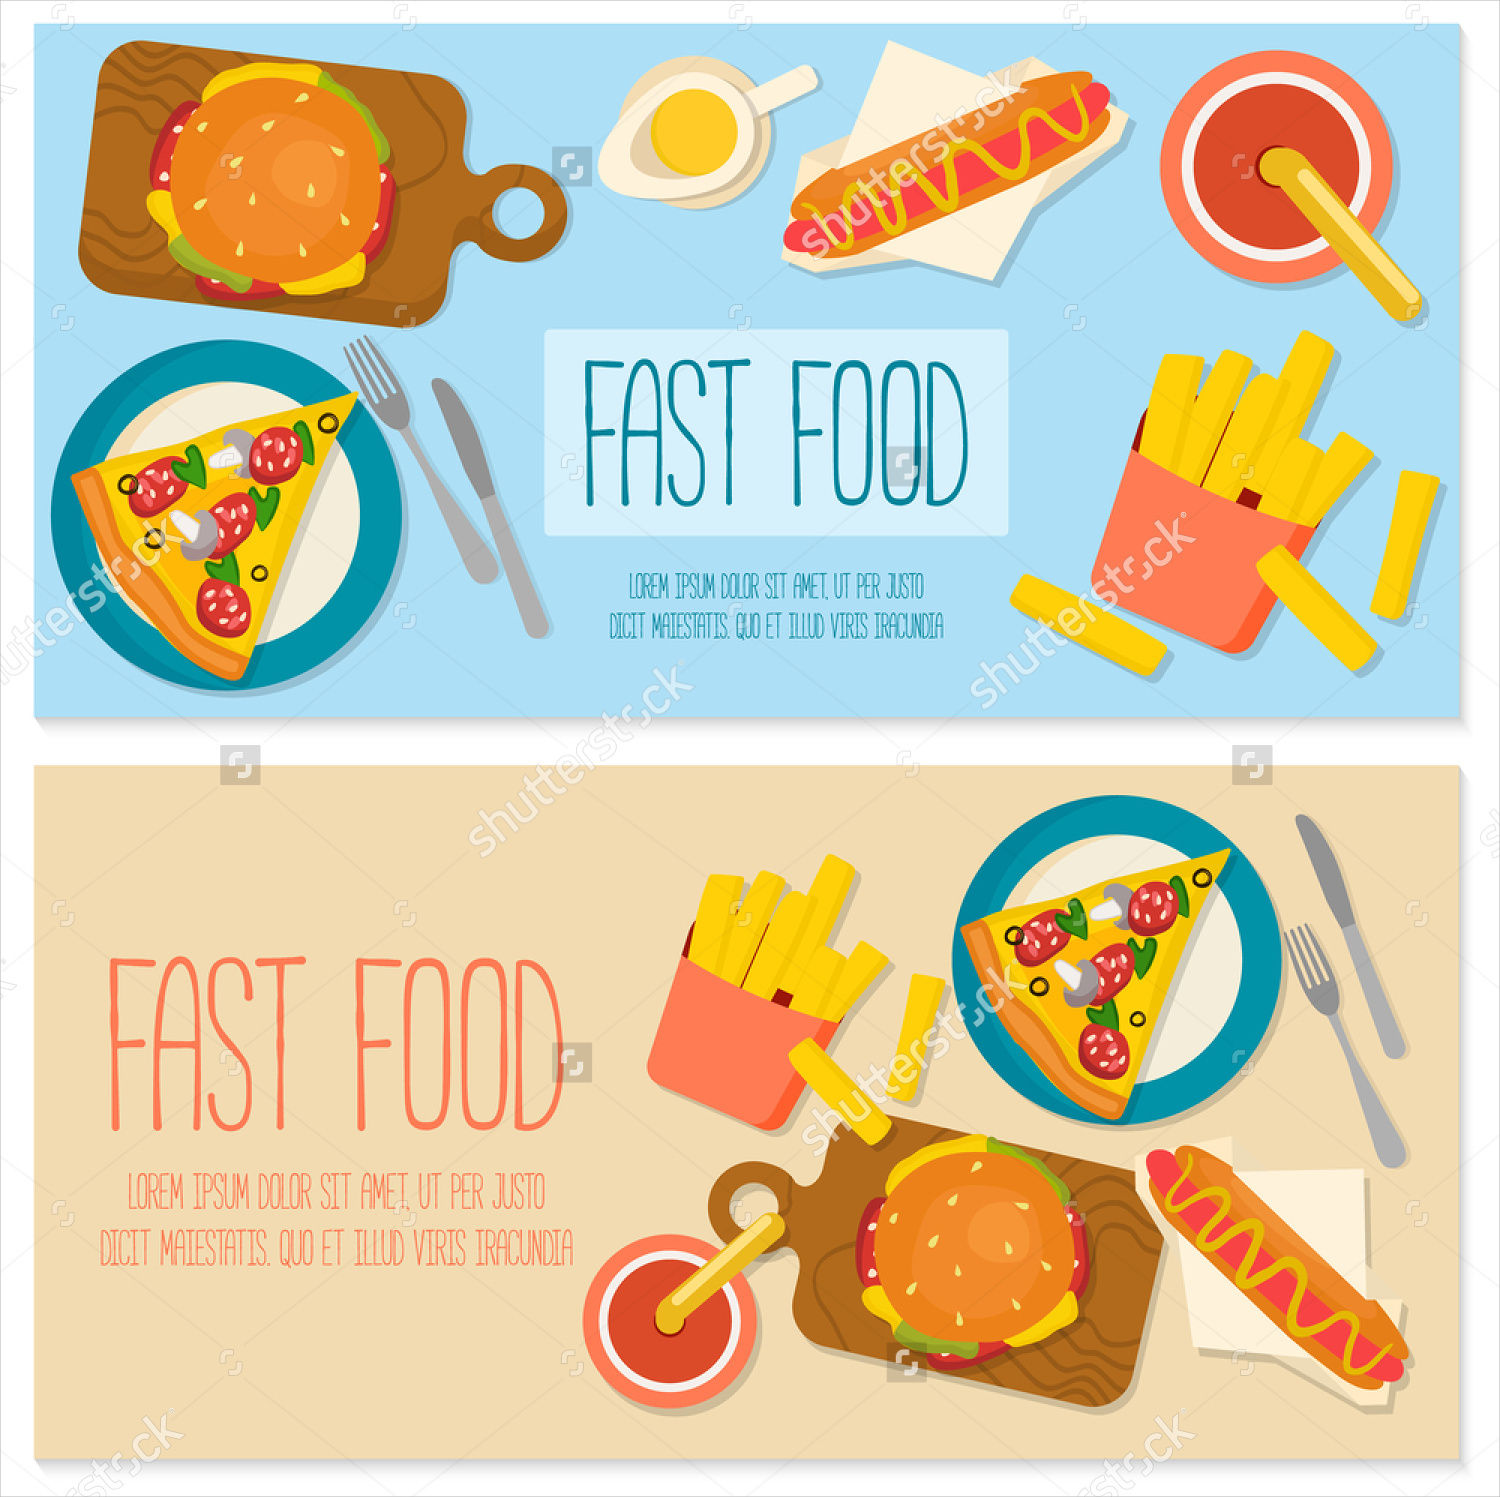 Healthy Food Fast Food Places